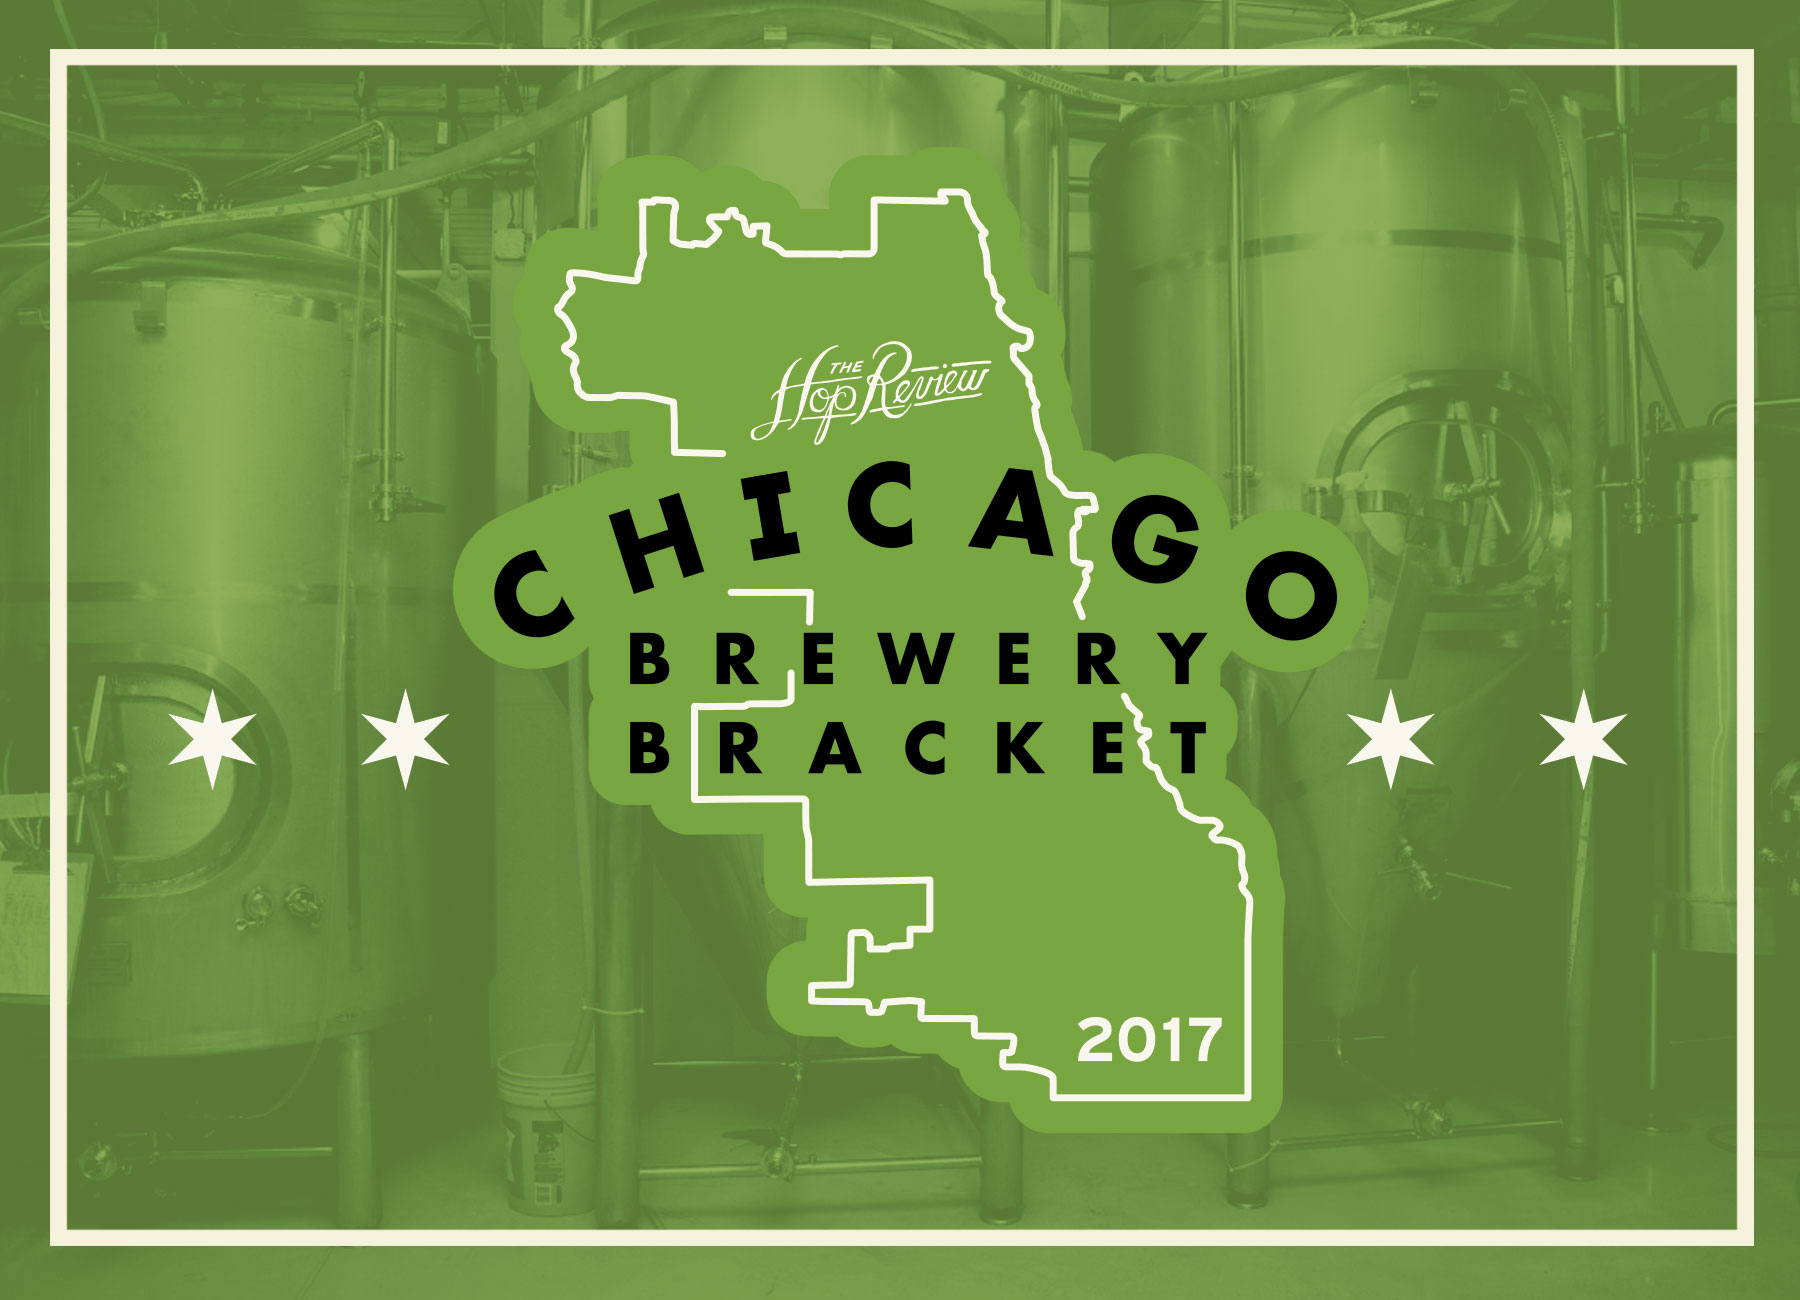 THR's 2017 Chicago Brewery Bracket: Final 4